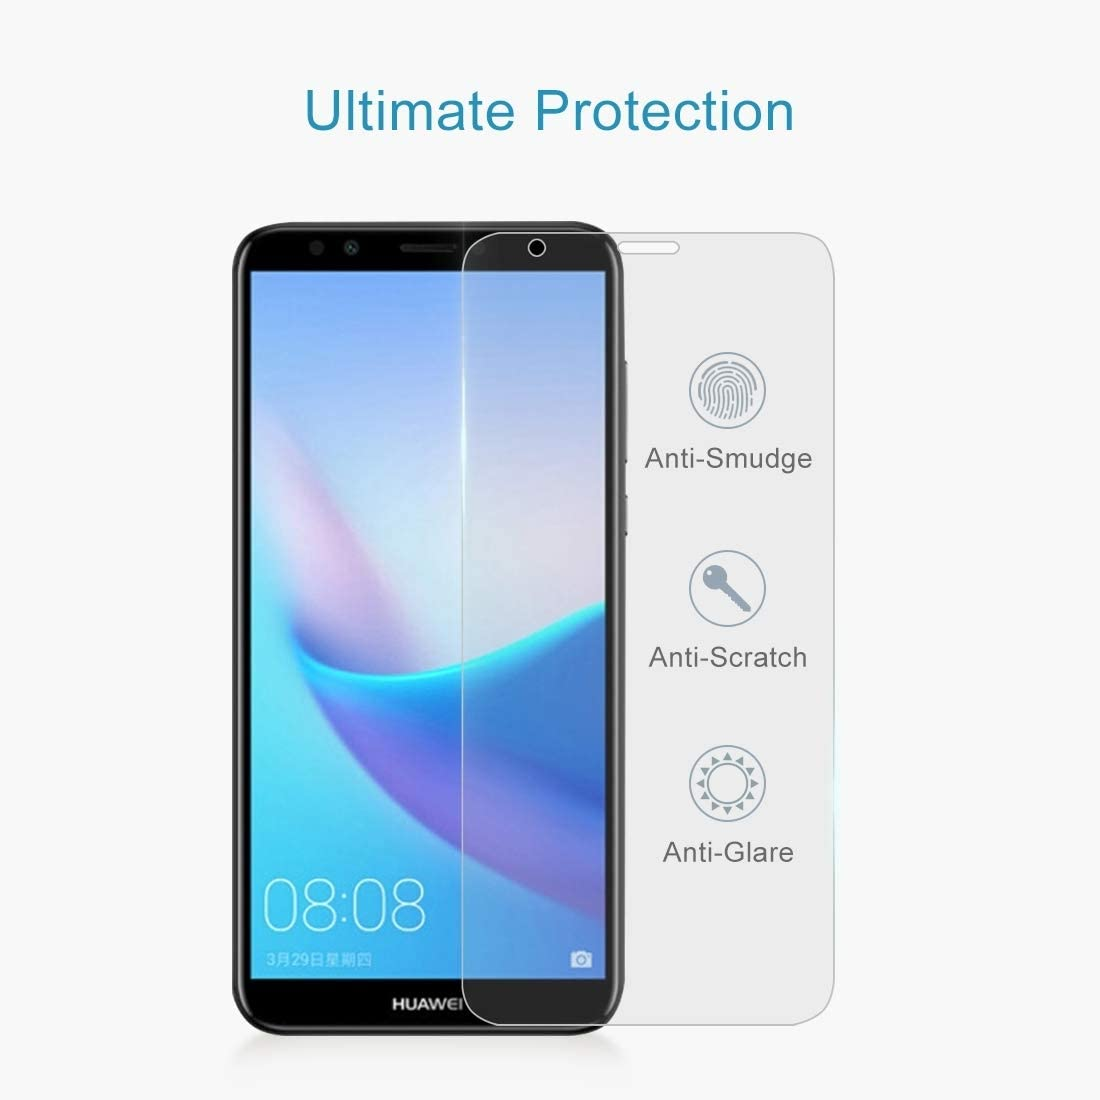 100 PCS 0.26mm 9H 2.5D Tempered Glass Film for Huawei Honor Play 7C Clear YINZHI Screen Protector Film